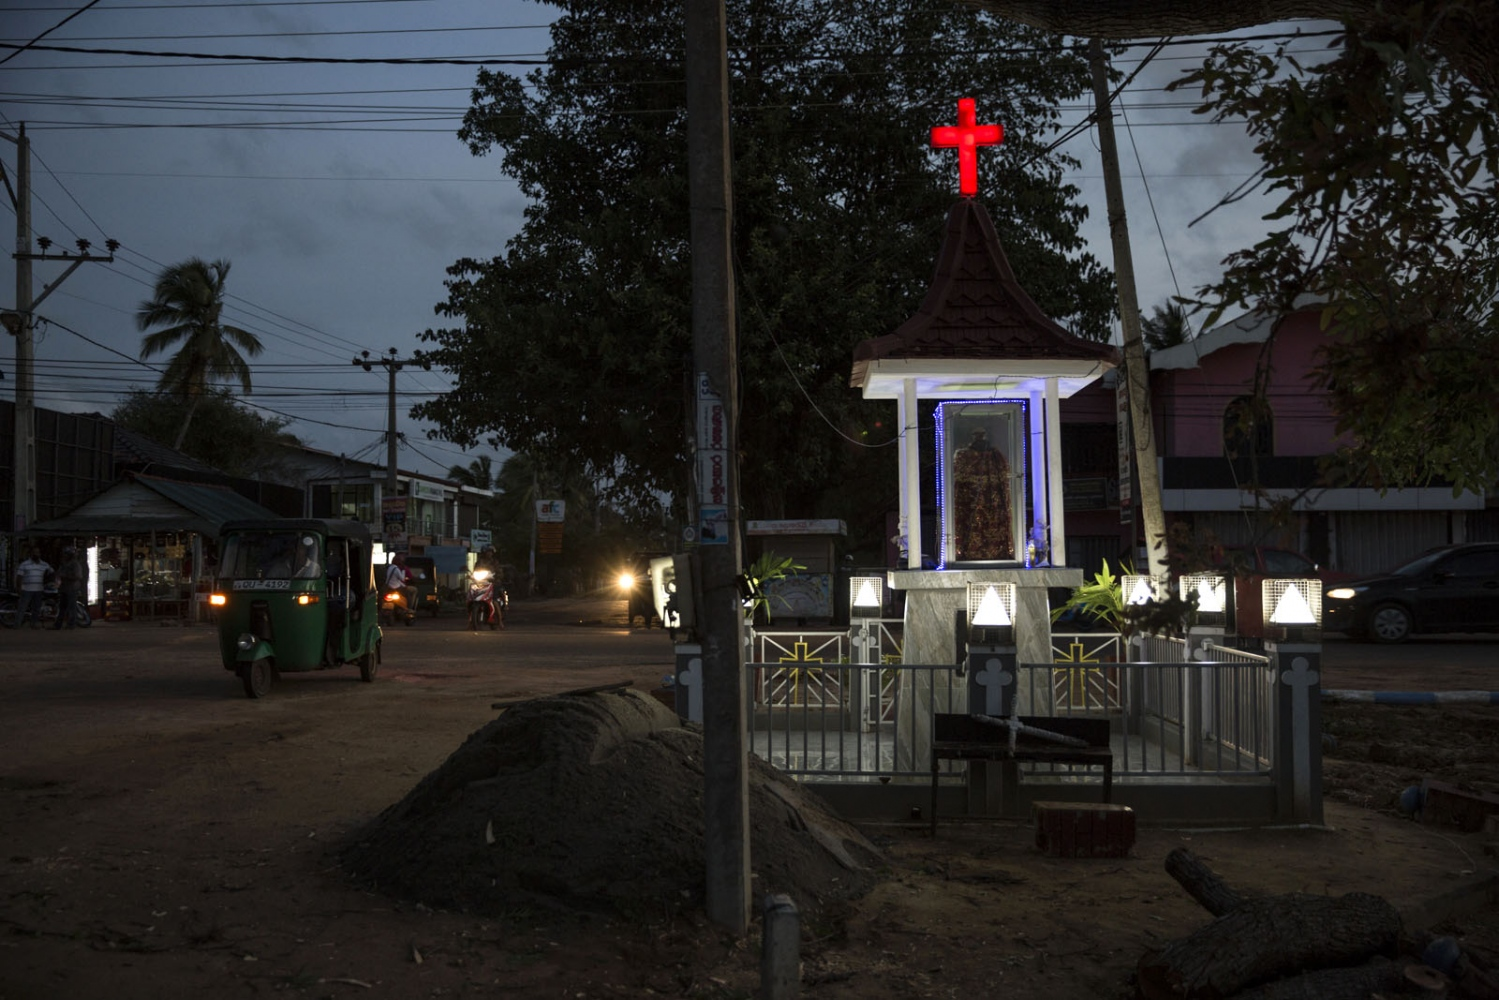 A Catholic shrine stands in the Muslim dominated town of Puttalam. The shrine is close by to St Mary's Church where centuries ago most of the Afro-Sri Lankans lived and who helped build the church. Since then they have dispersed to various other areas in the town and outside. Puttalam, Sri Lanka - September 2017